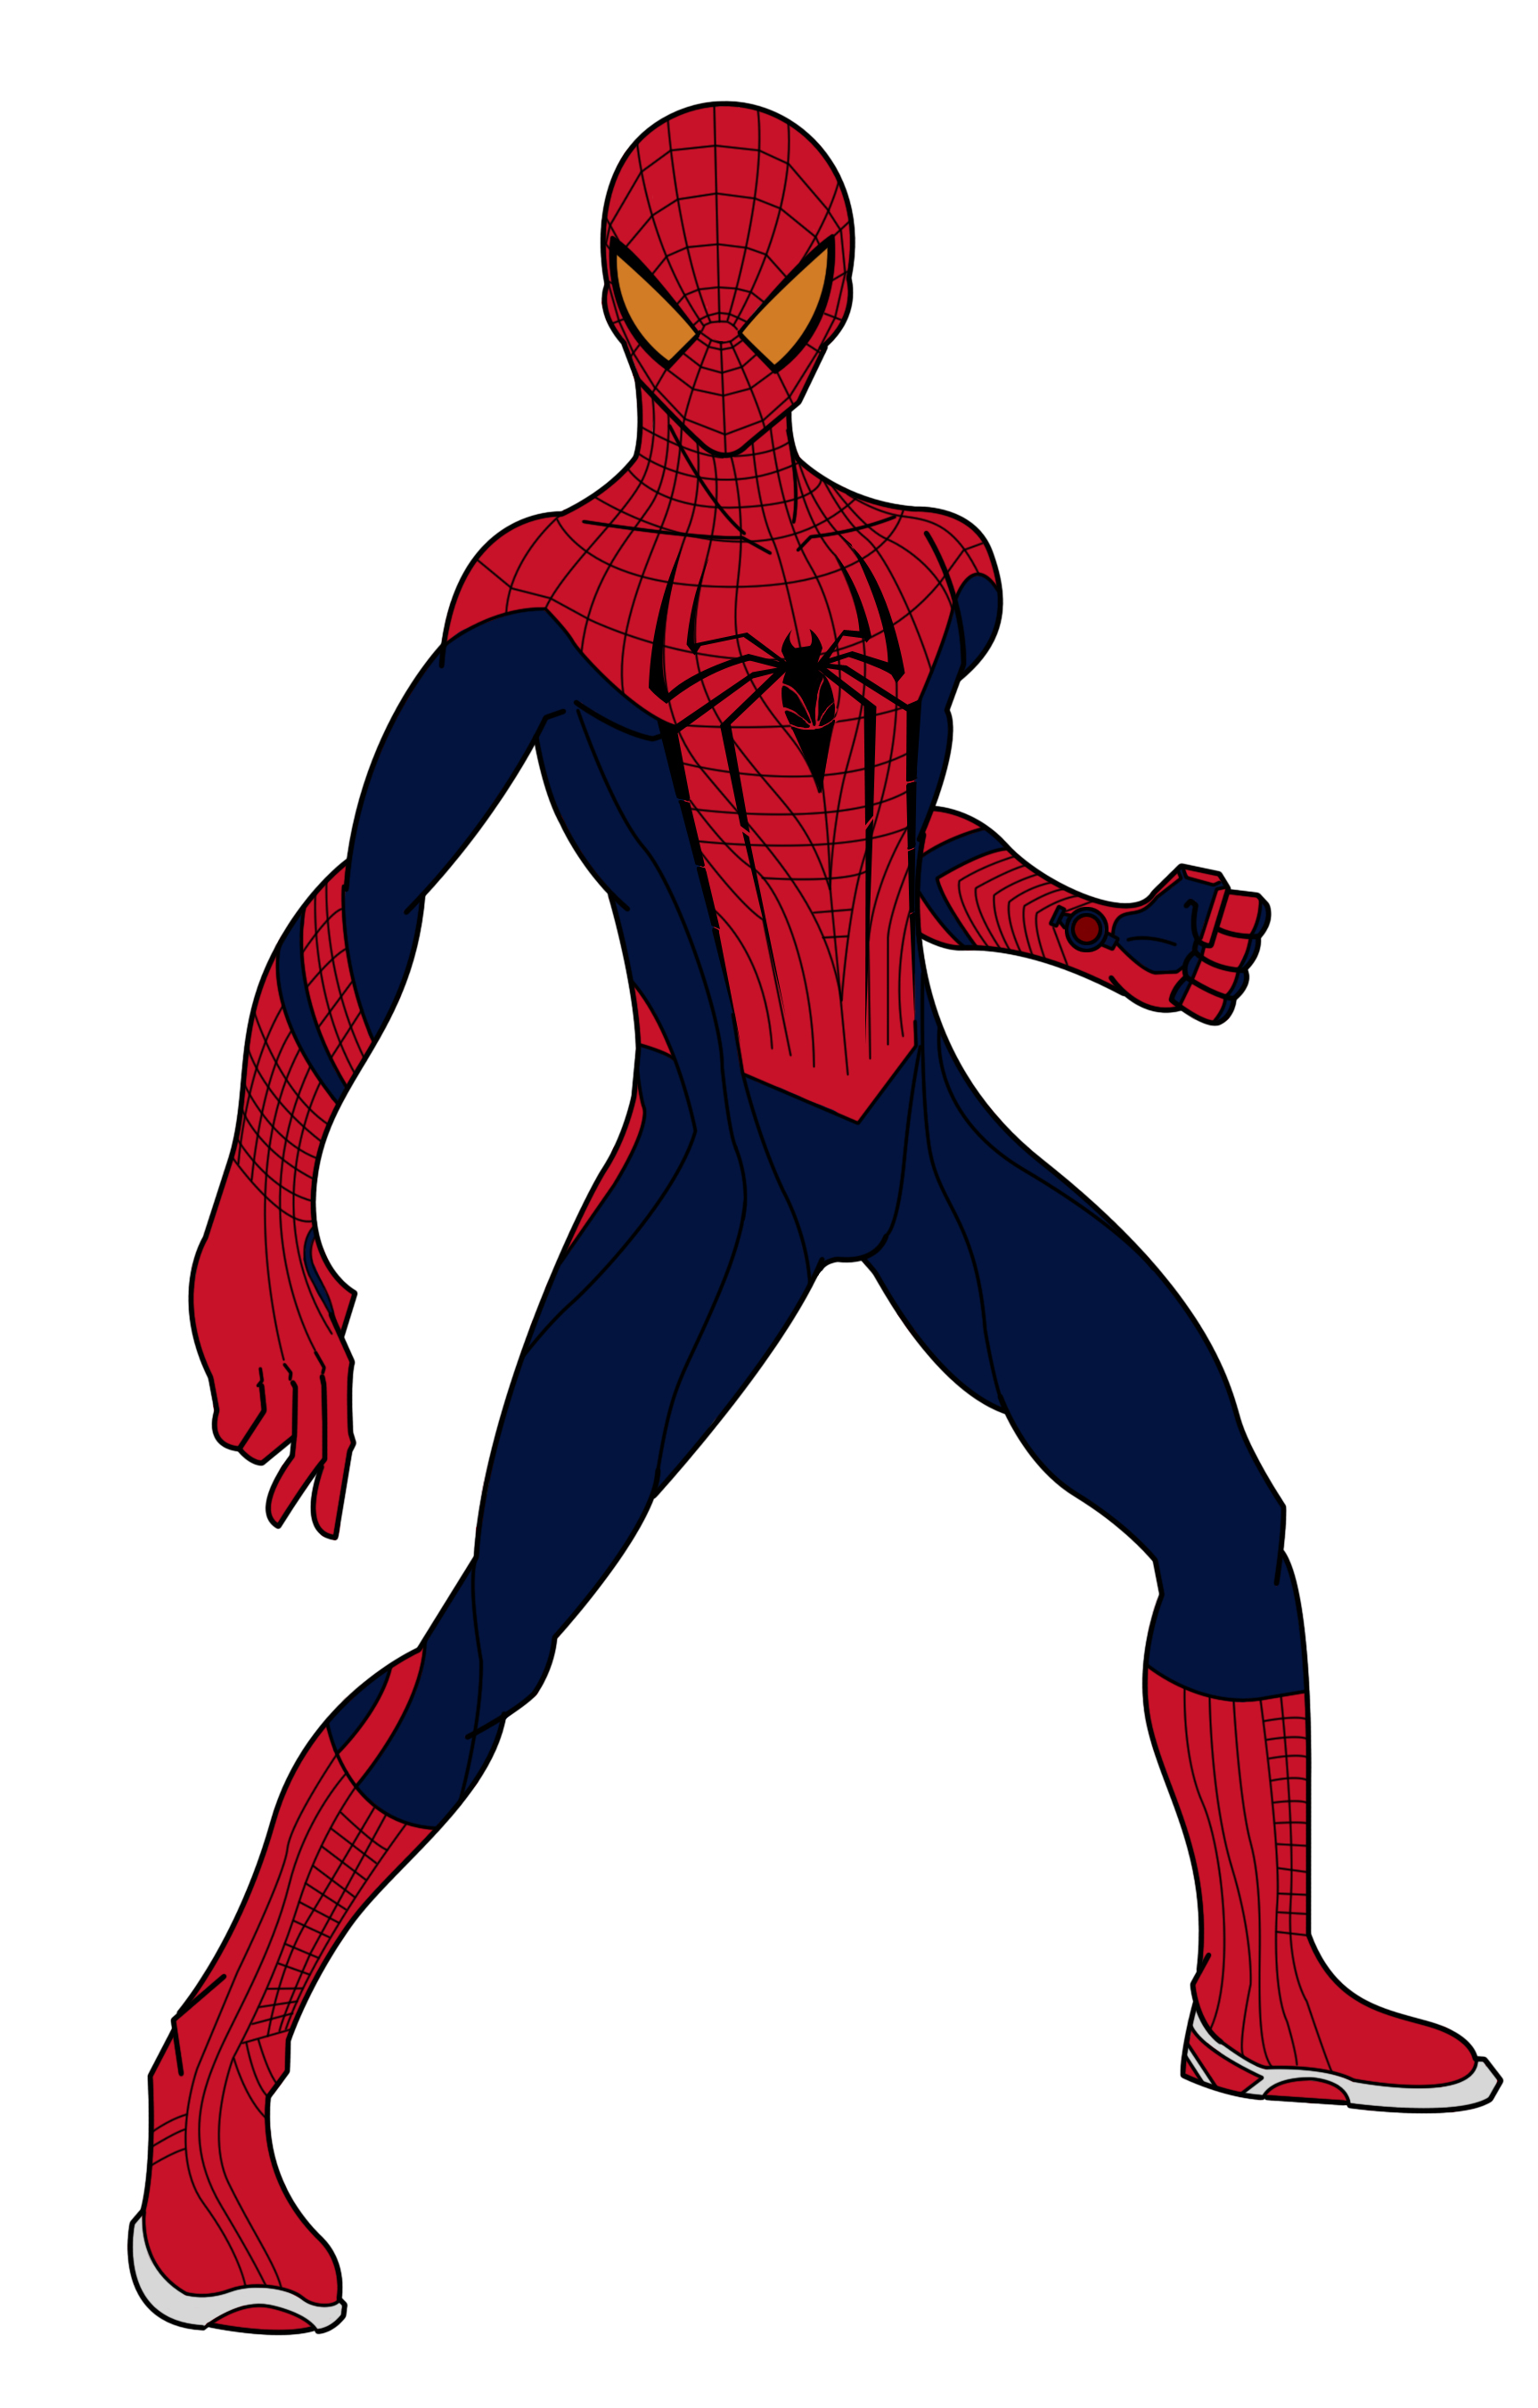 Free Gambar Spiderman - ClipArt Best